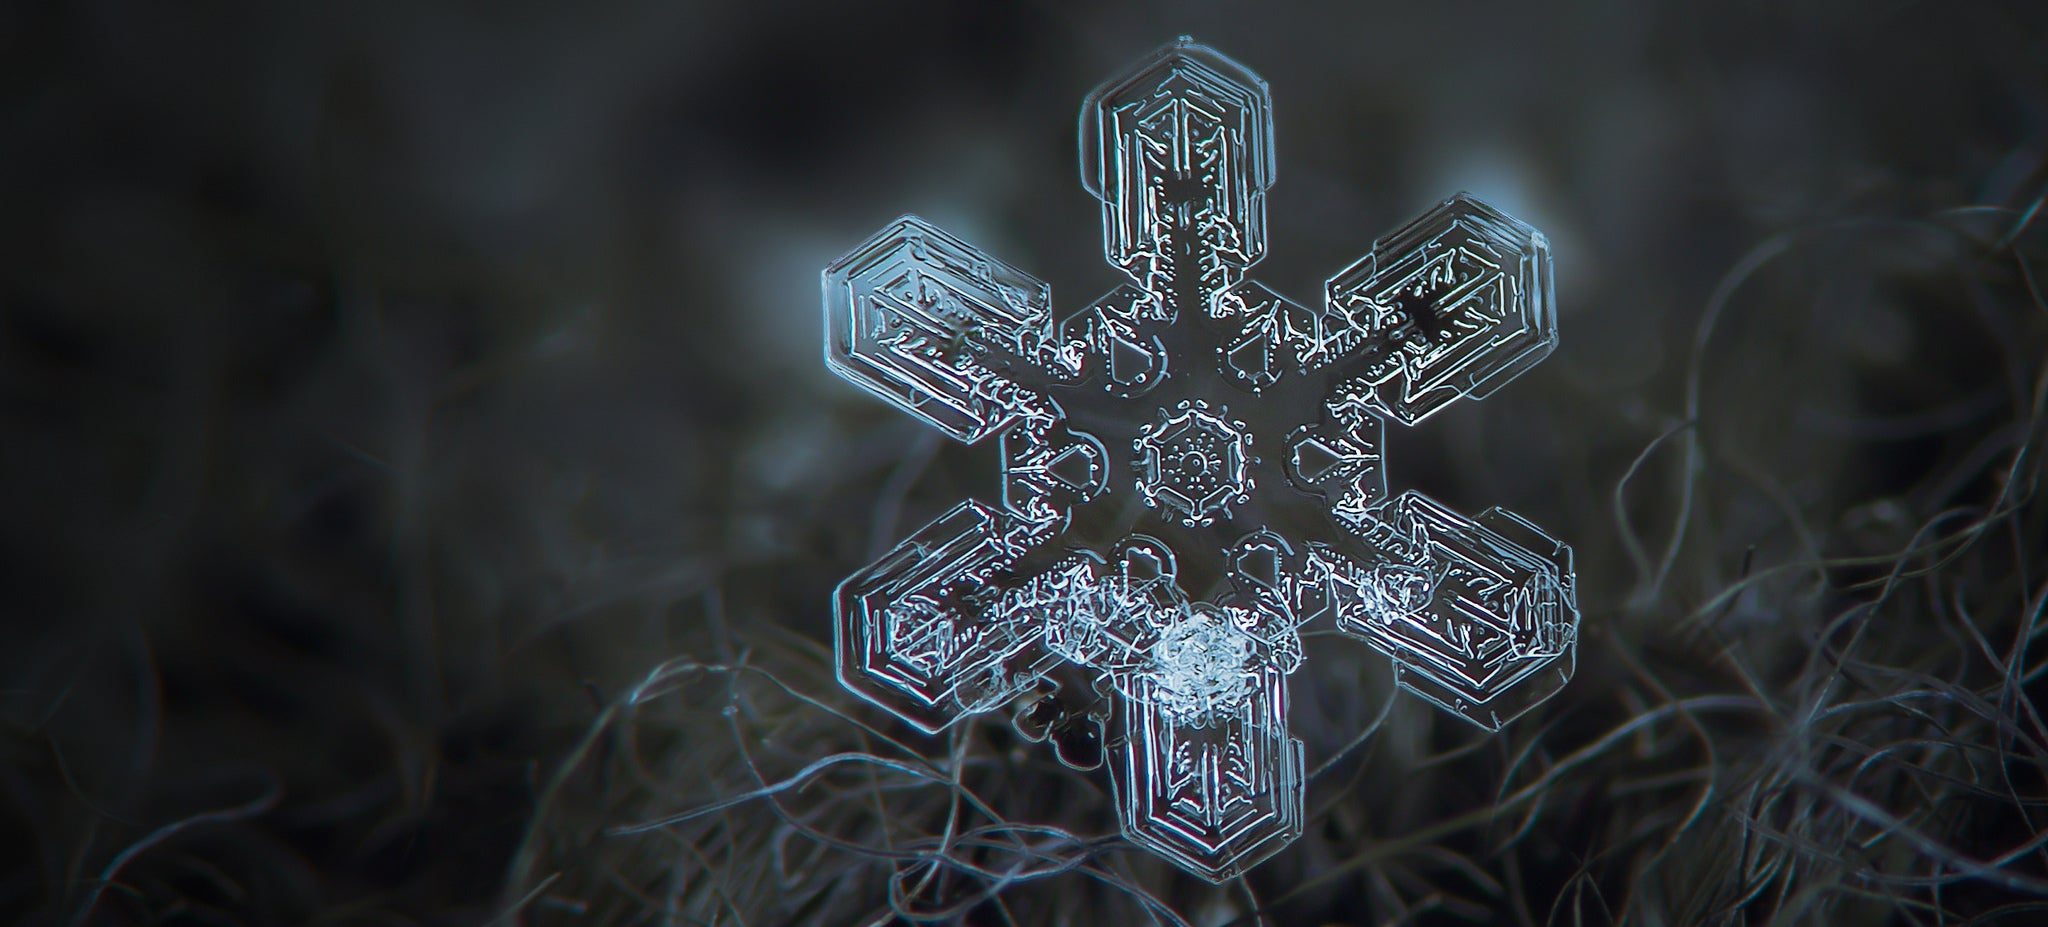 Why Snow Is White Even Though Snowflakes Are Clear